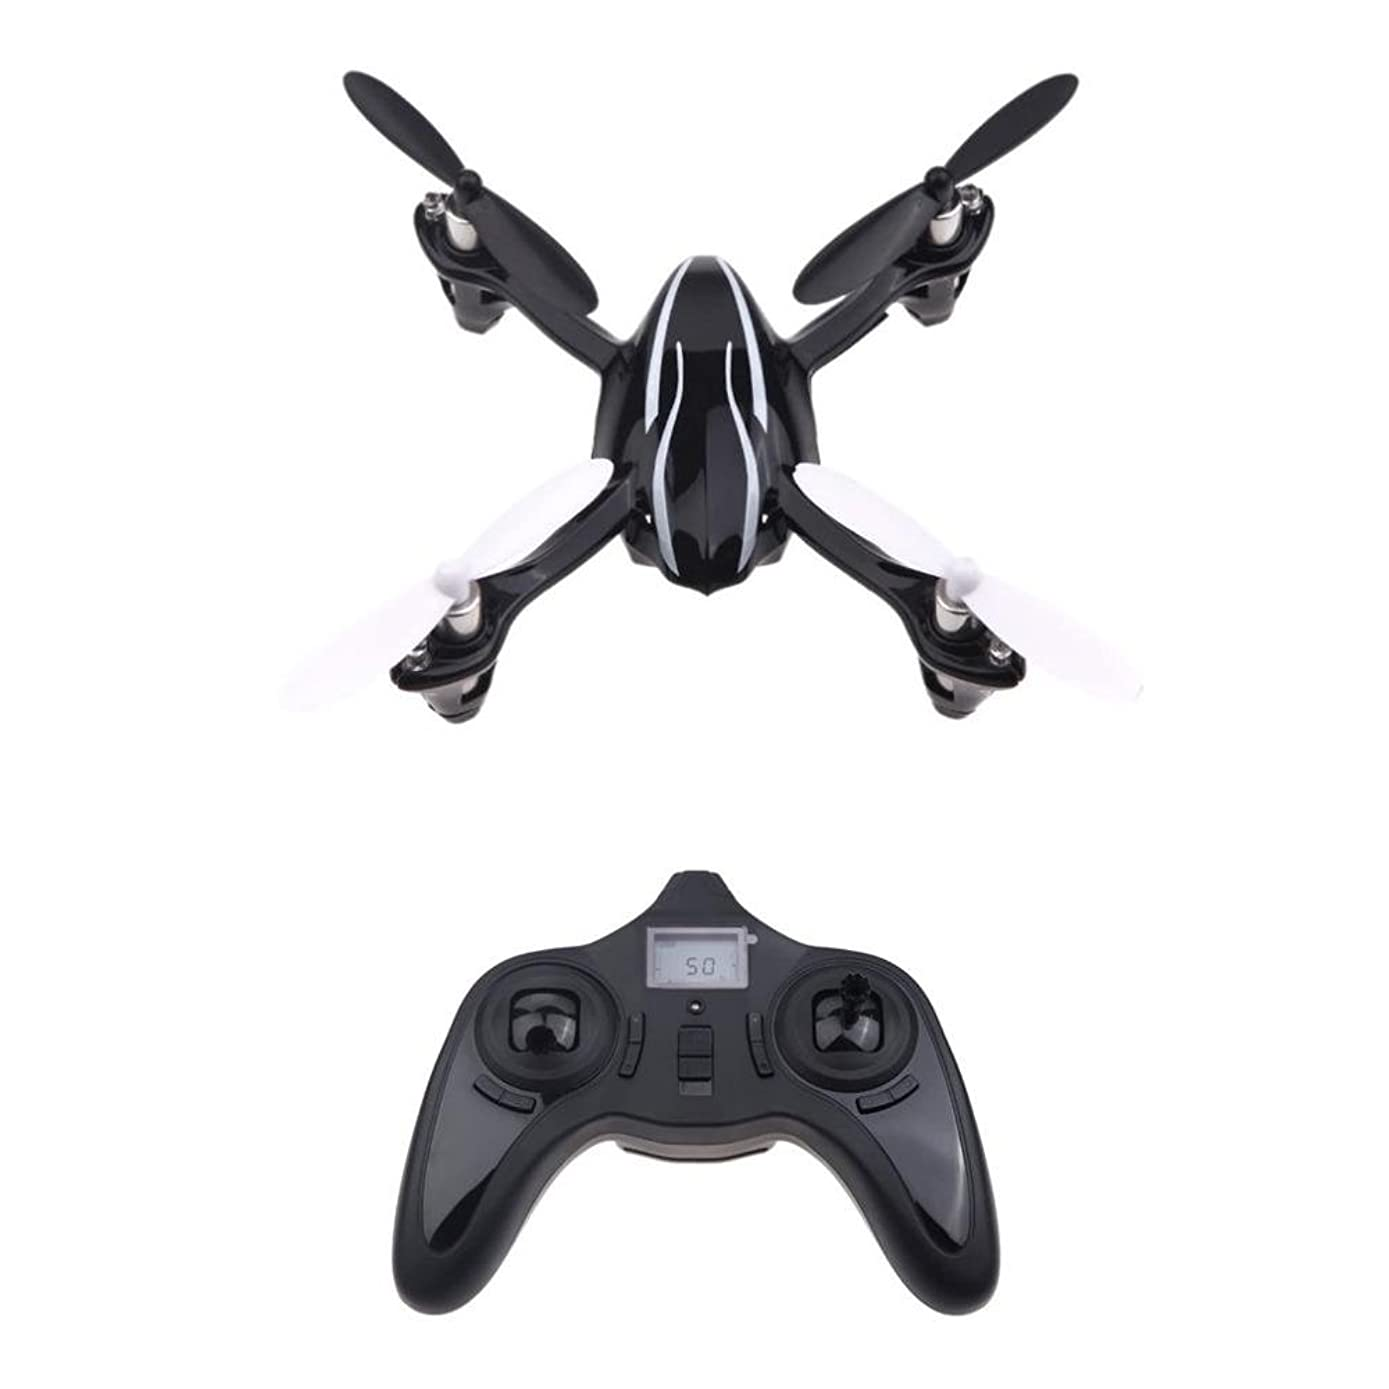 Hubsan H107L X4 RC Drone 2.4GHz 6-axis Gyro Portable Mini Helicopter RTF (Hot Drone 2.4GHz 6-axis Gyro Portable Mini Helicopter RTF RC Quadcopter With 3D Flips Rolls Built-in LED)